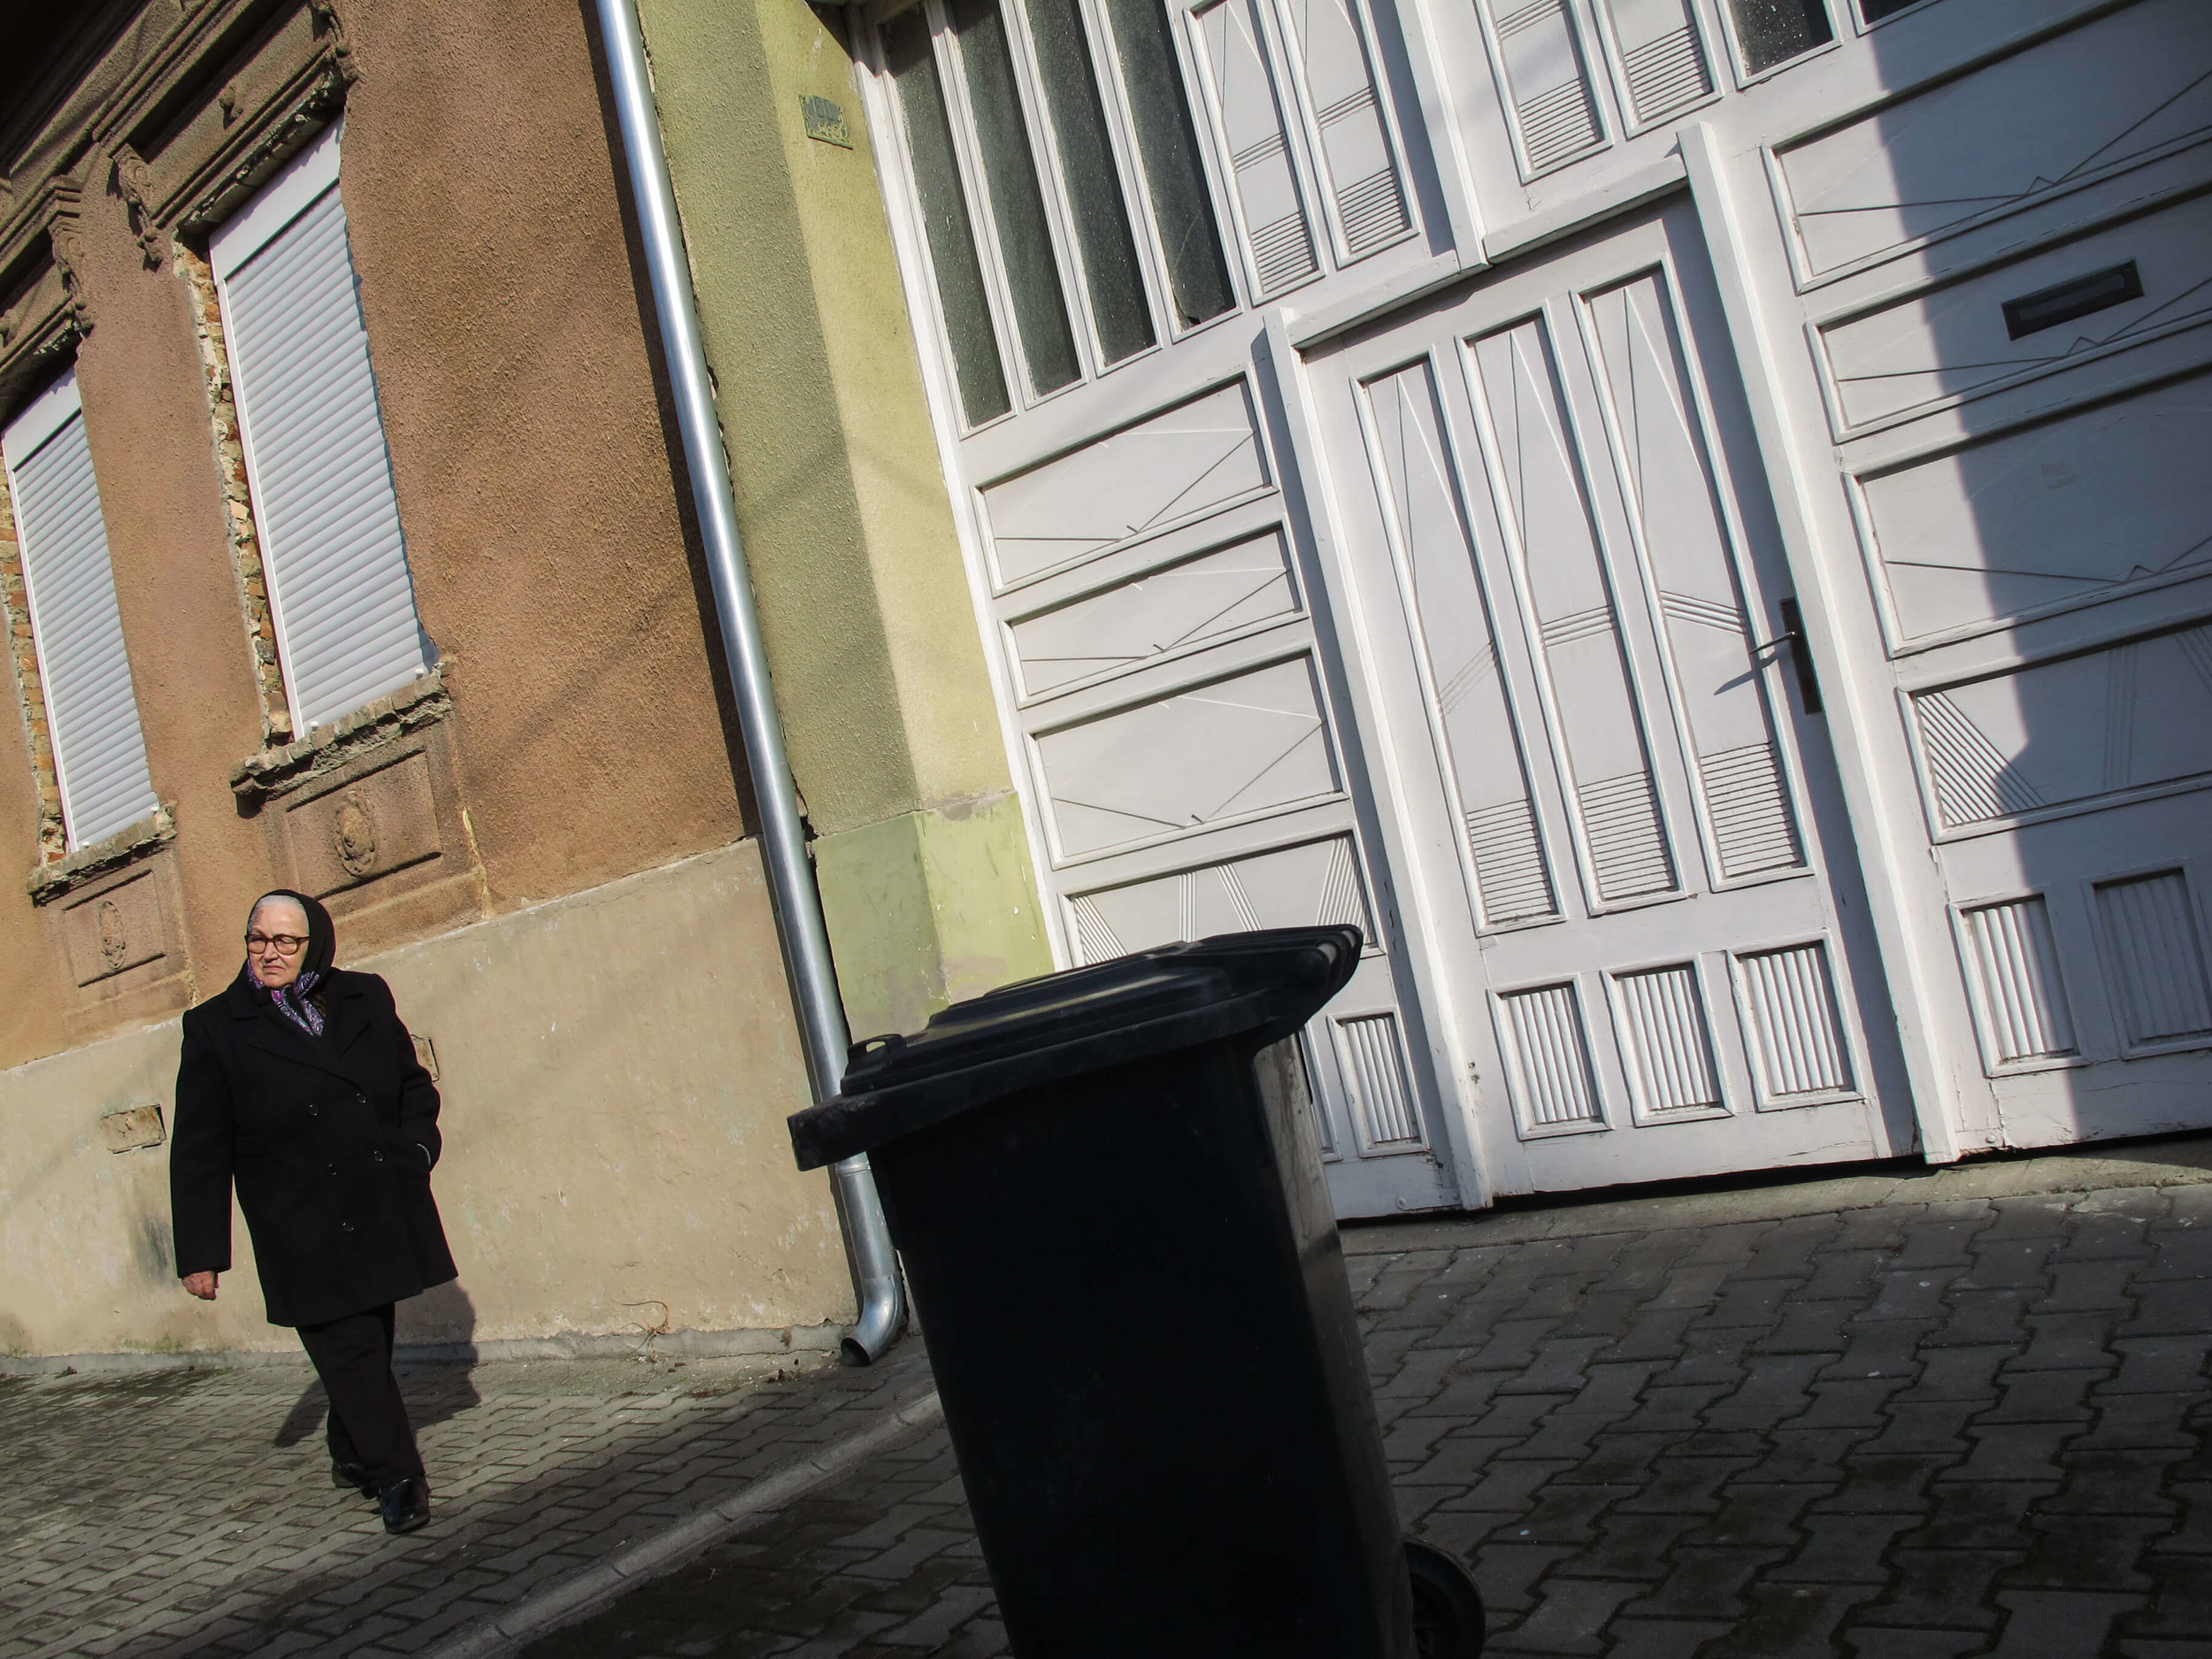 The elderly hold the biggest part of Vršac's population as most of the youth move away to the capital to study.